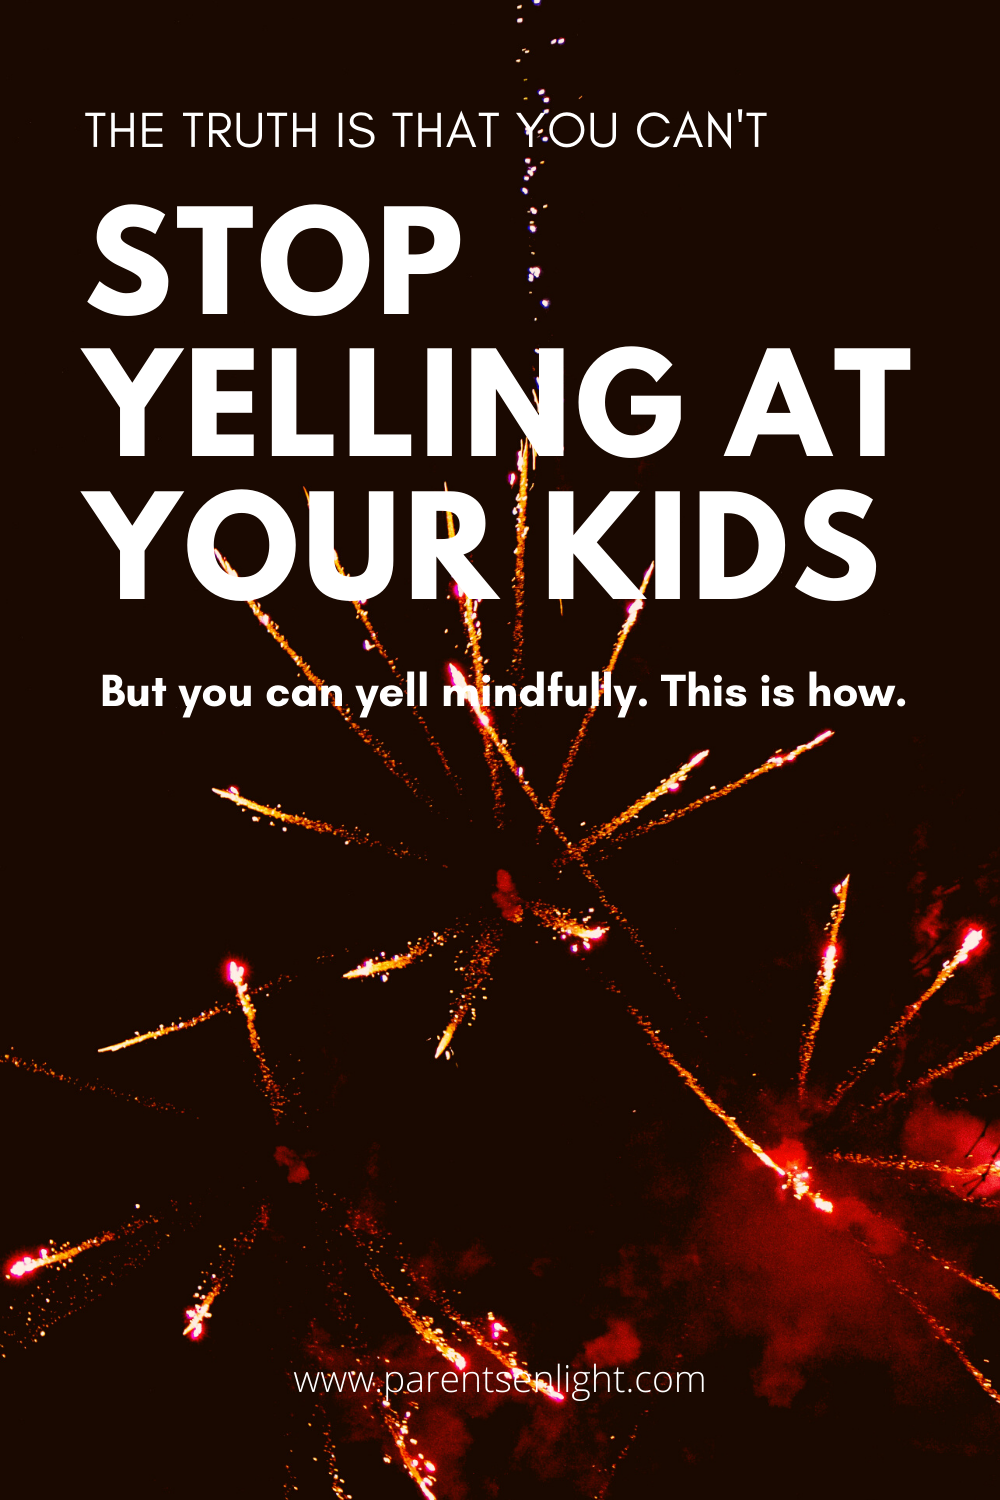 The main problem with yelling at children is the sense of guilt and shame through which results are often achieved. Guilt and shame are harmful, yelling mindfully is a blessed change anyone can take for the sake of their family and children's wellbeing. This is how #howtostopyelling #badmom #goodmom #parenting #mindfulparenting #mindfulness #positivecommunicationwithkids #peacefulparenting #stopyelling #parentinghelp